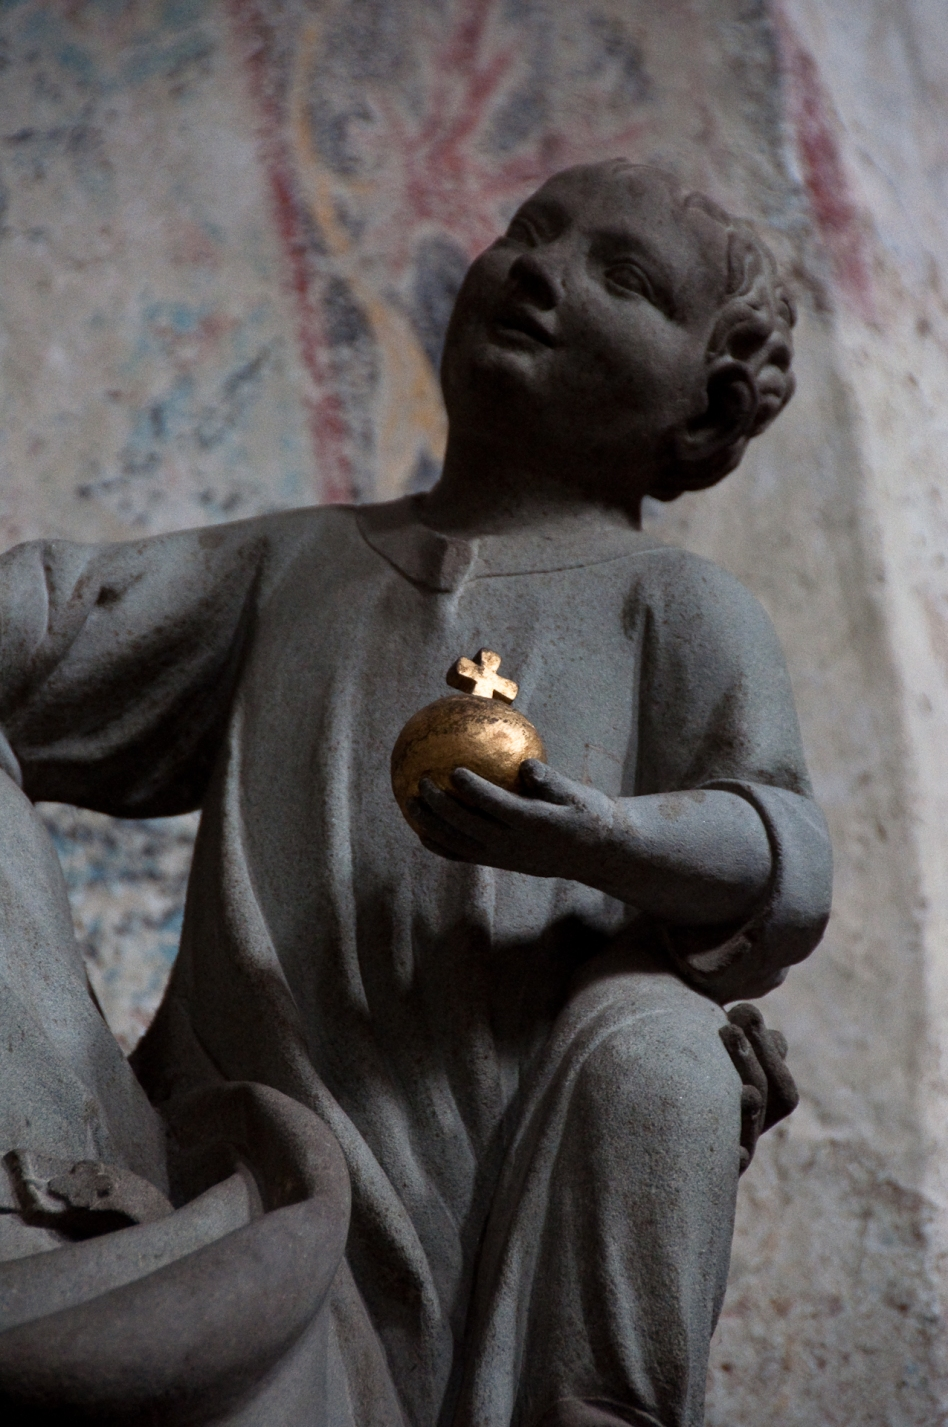 putti kyrka church guld äpple gold apple Reichenau